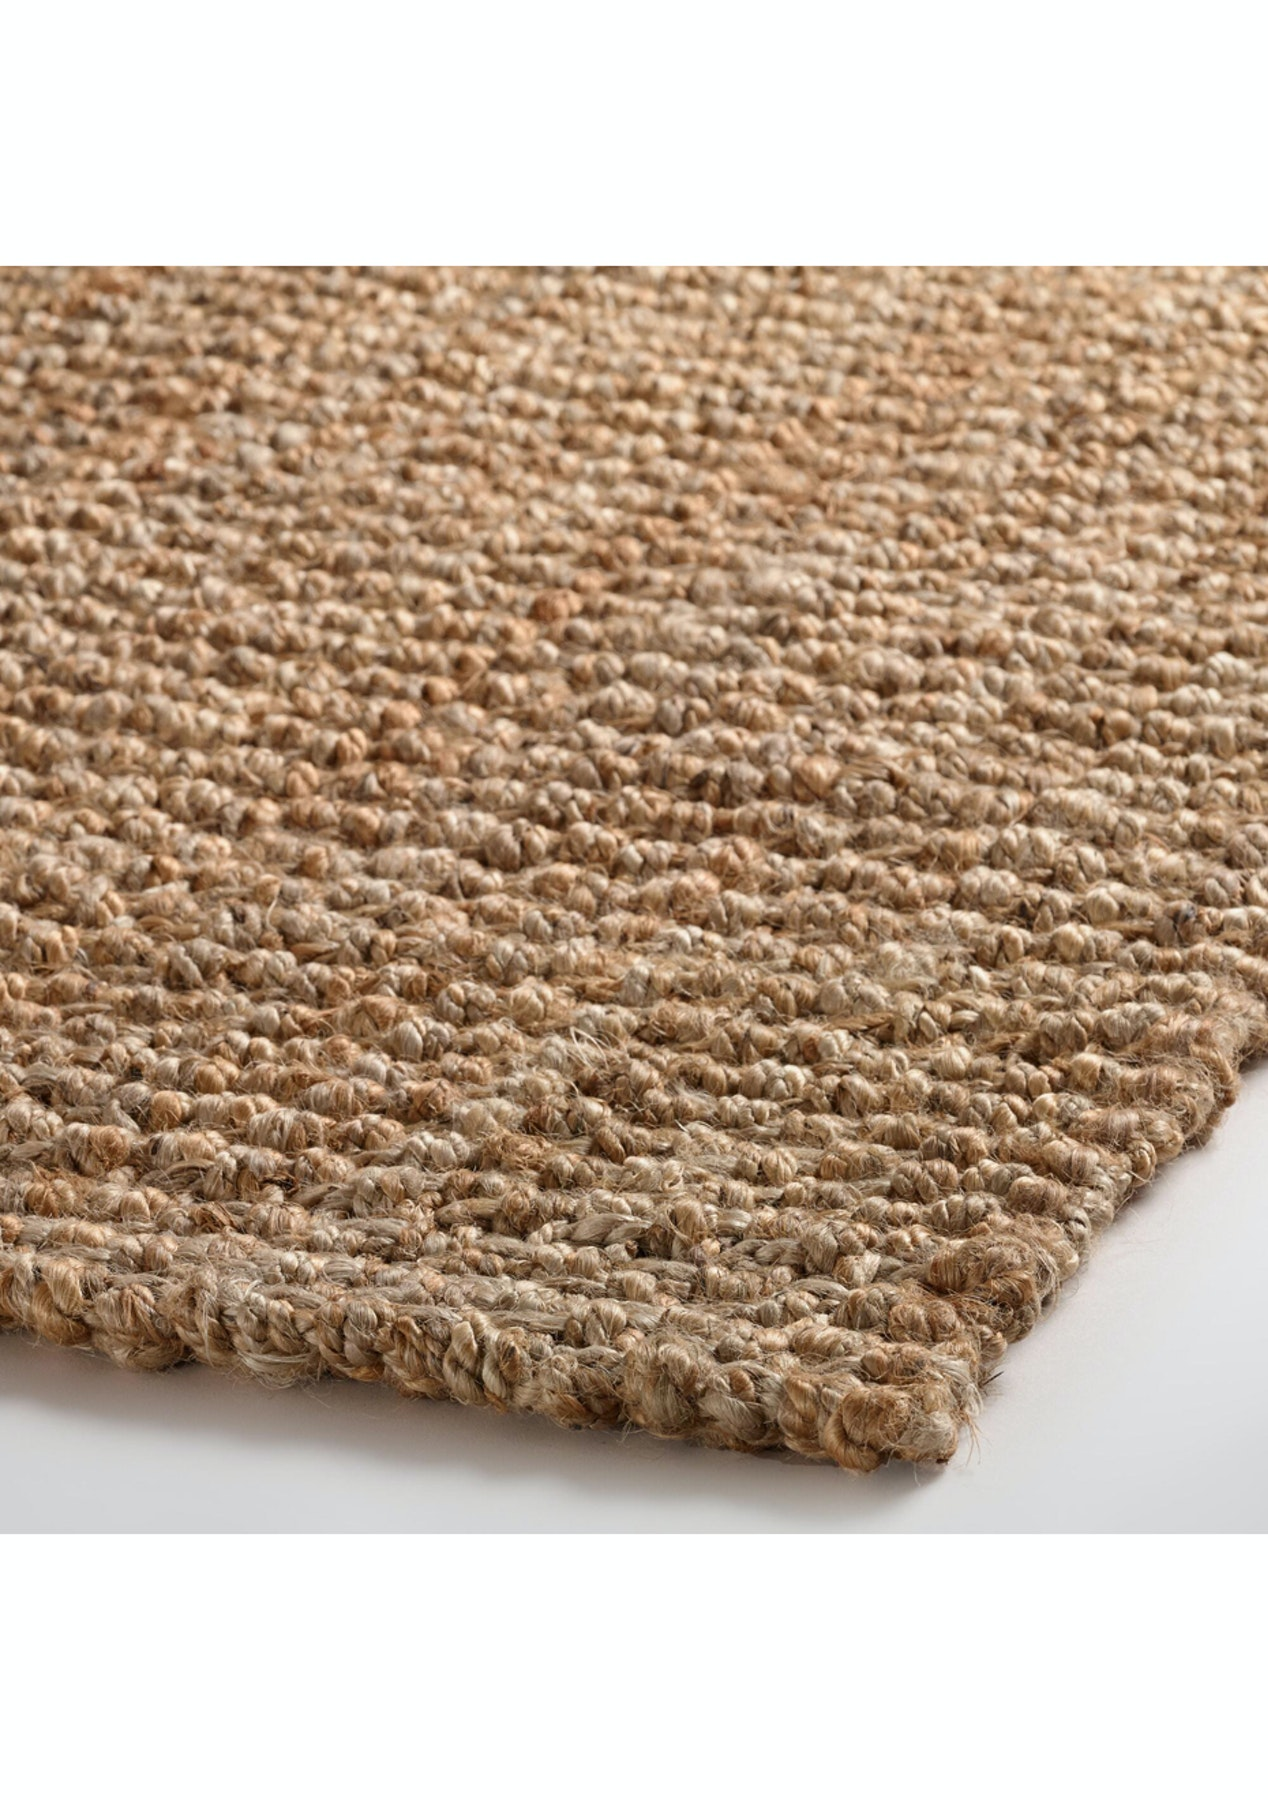 Indian Jute Rug 200 X 280cm Best Selling Rugs Free Shipping Onceit